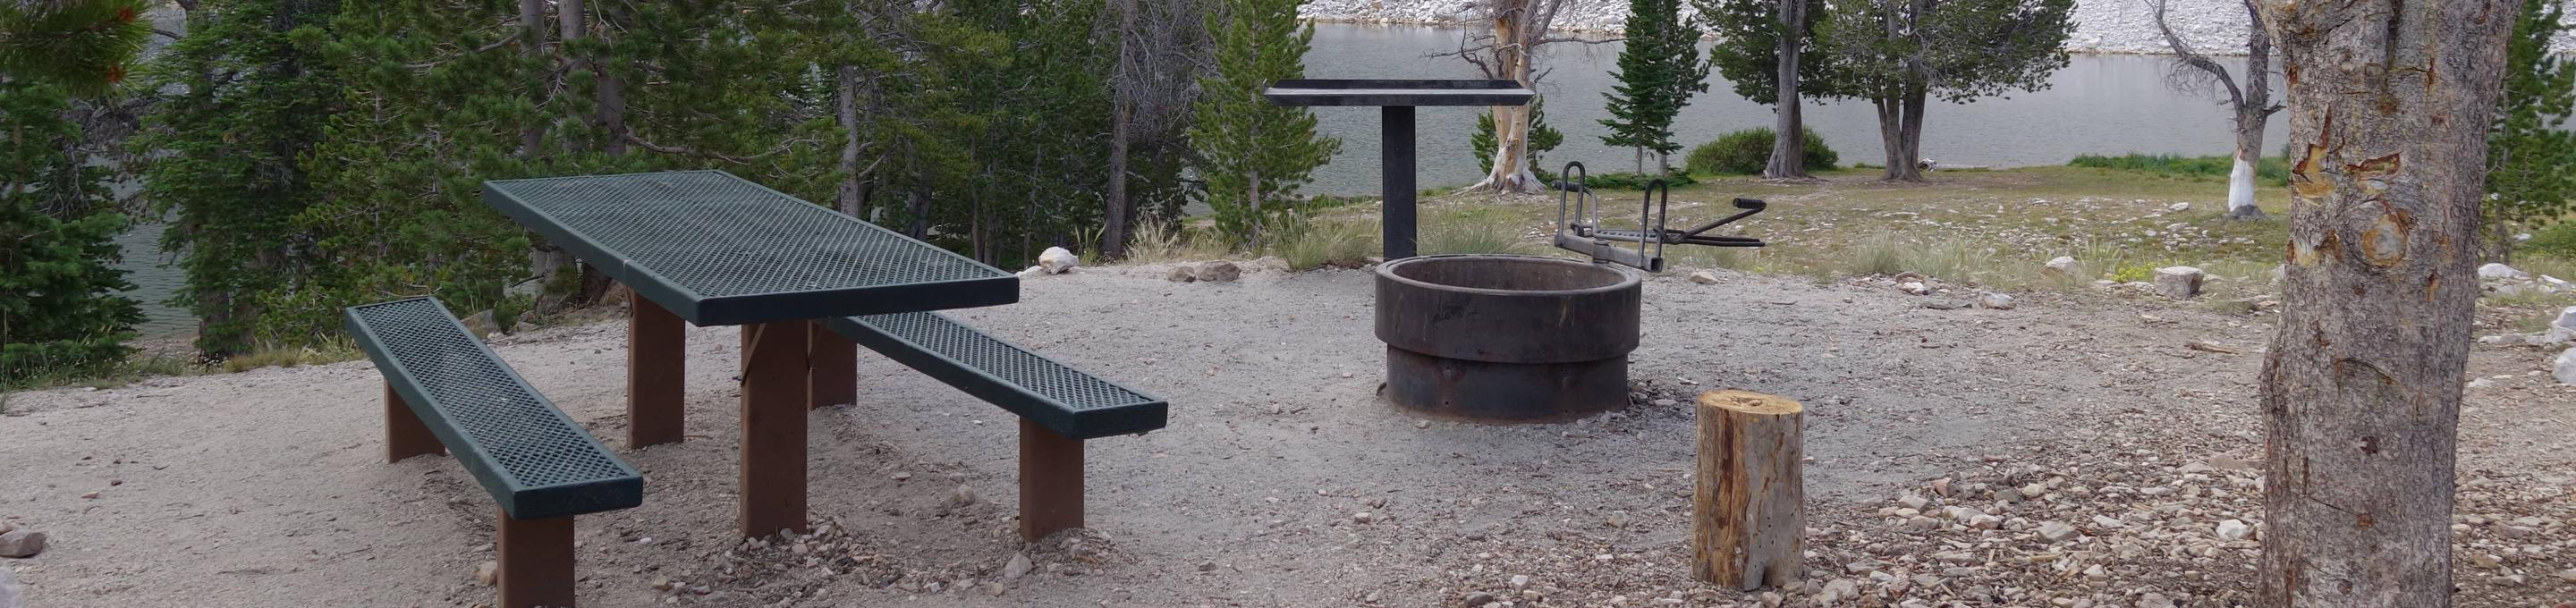 Site 12 (Single Site) - Picnic Table, Campfire Ring and Prep TableSite 12 (Single Site)